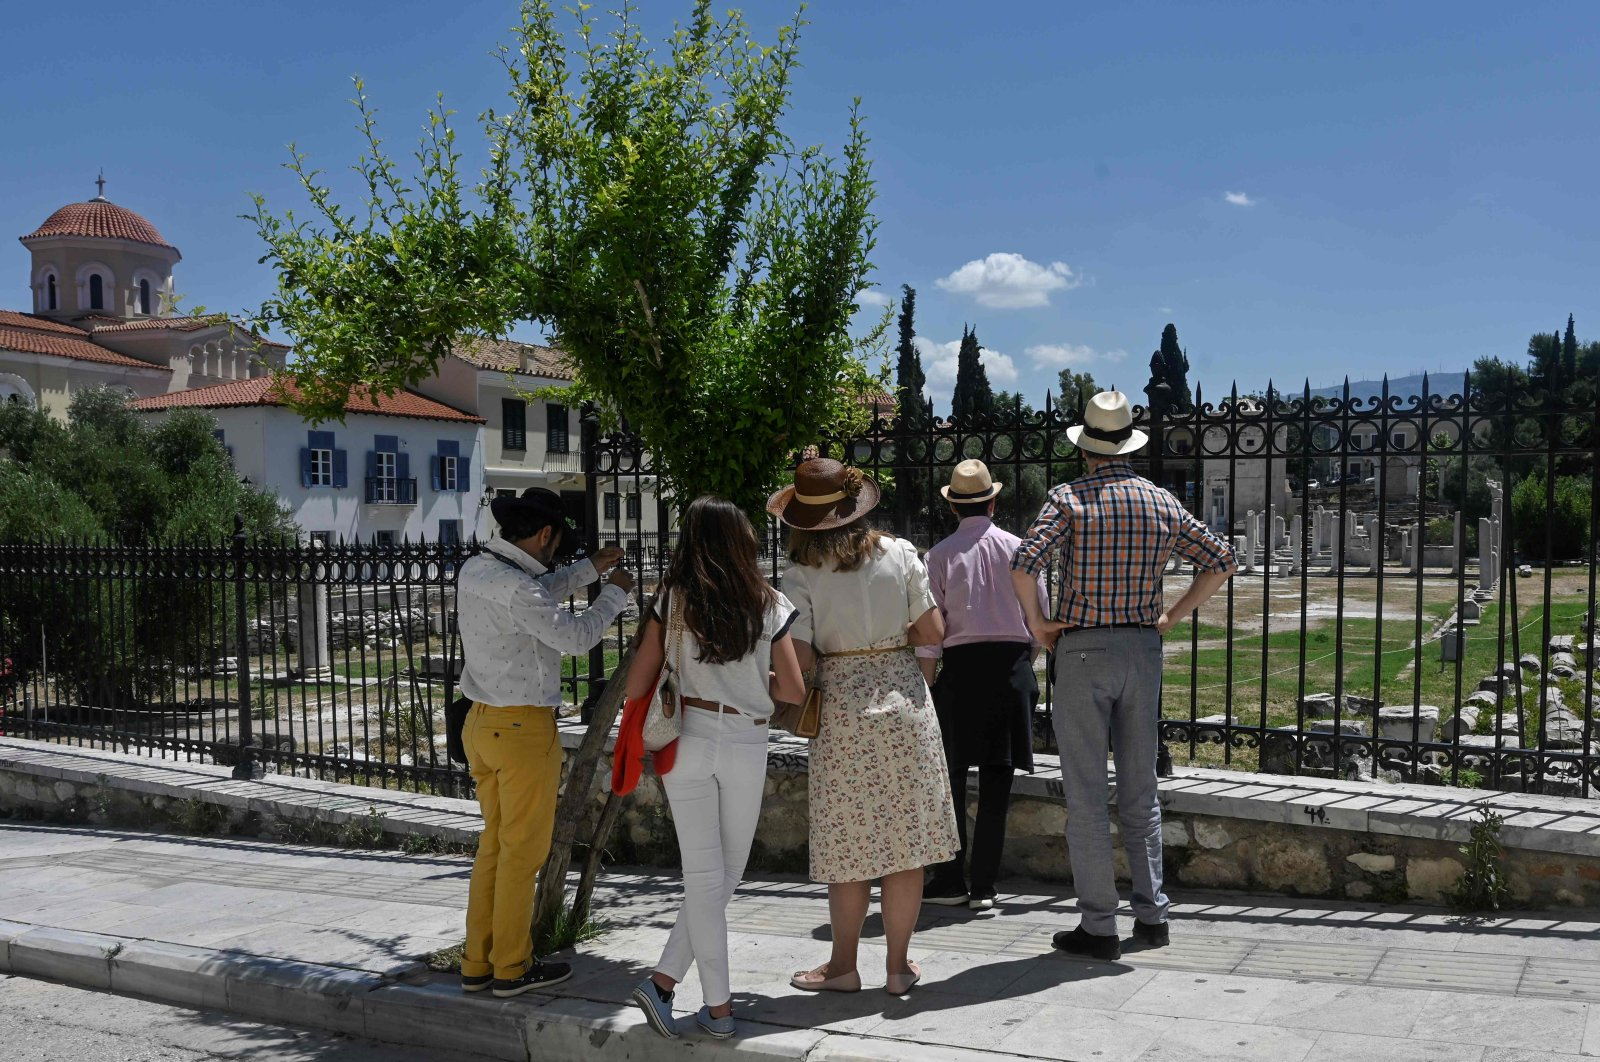 Italians tourists look at the roman agora in Athens on June 4, 2020, as Greece eases lockdown measures taken to curb the spread of the COVID-19. (AFP Photo)